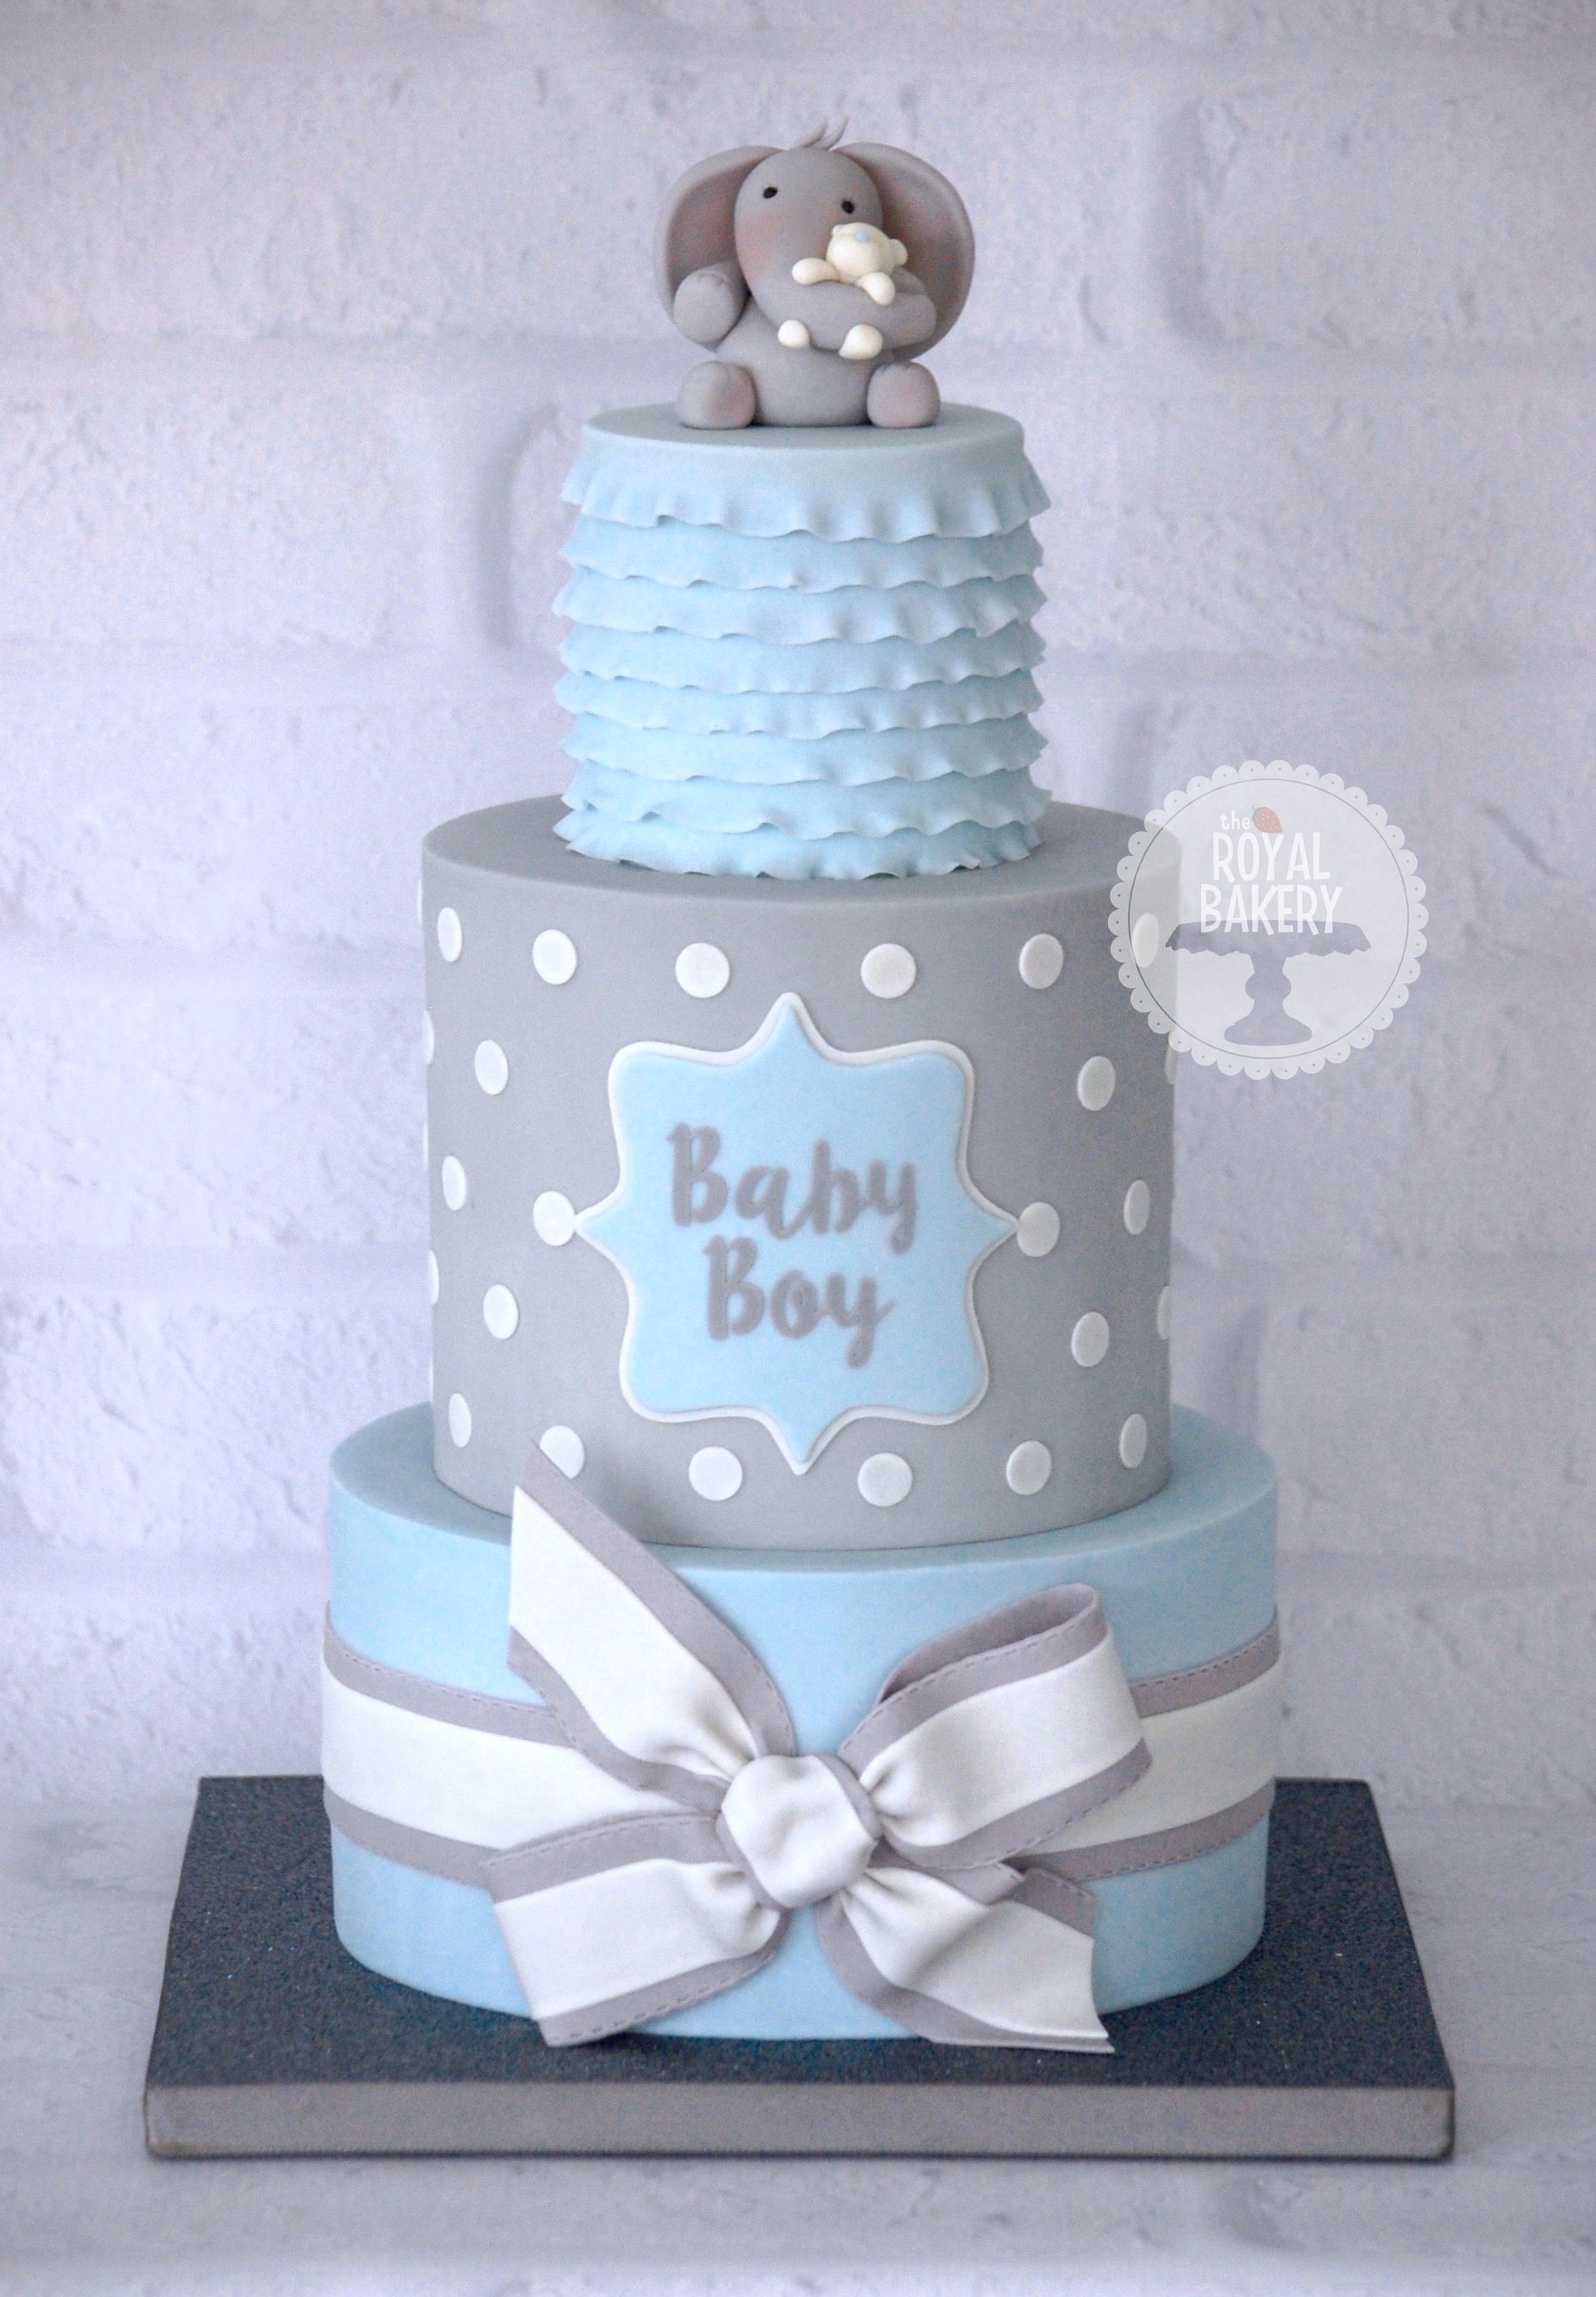 A baby boy blue and grey baby shower cake based on a design